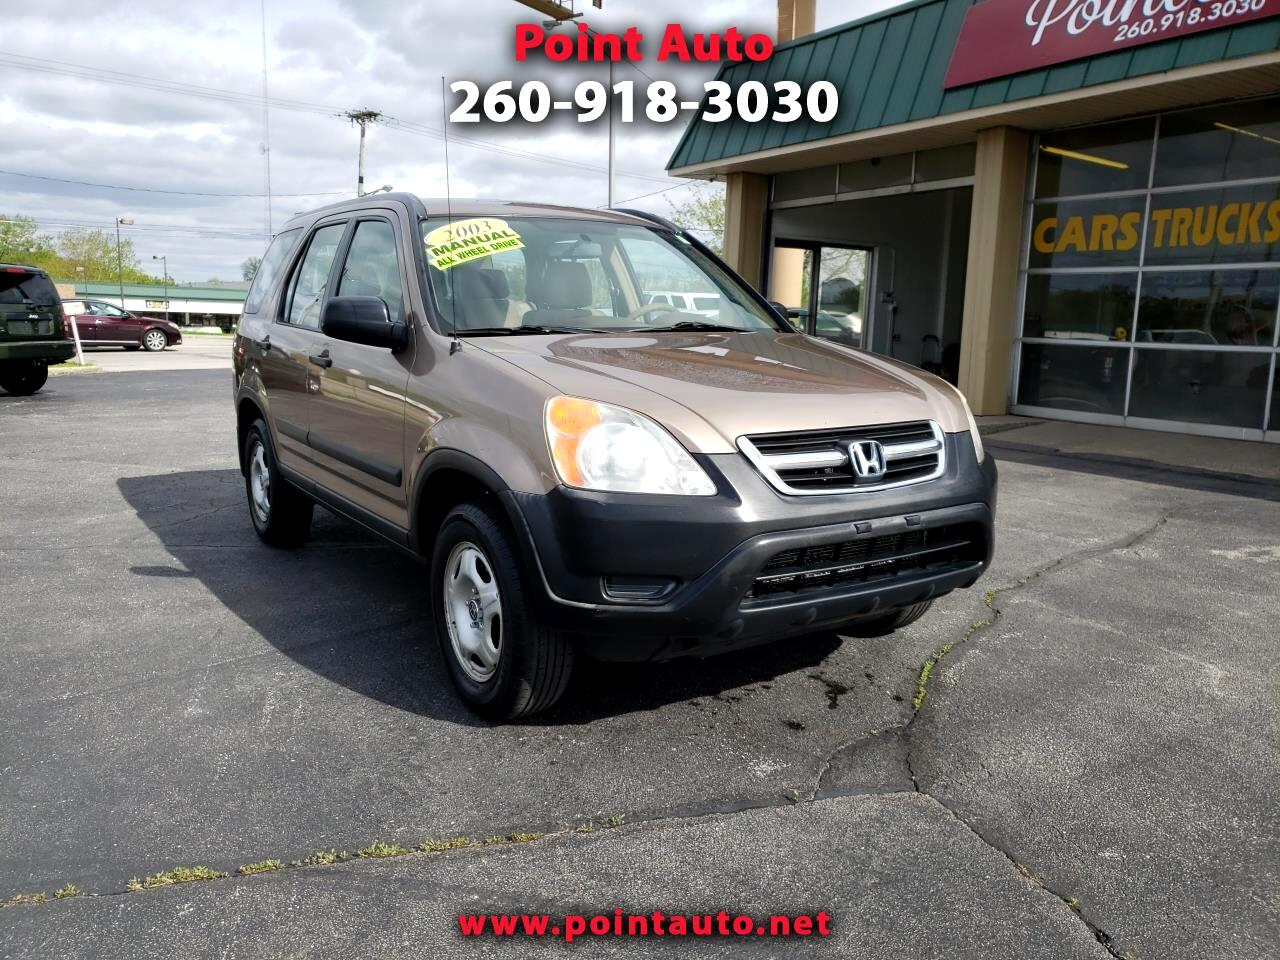 2003 Honda CR-V LX 4WD w/ Front Side Airbags